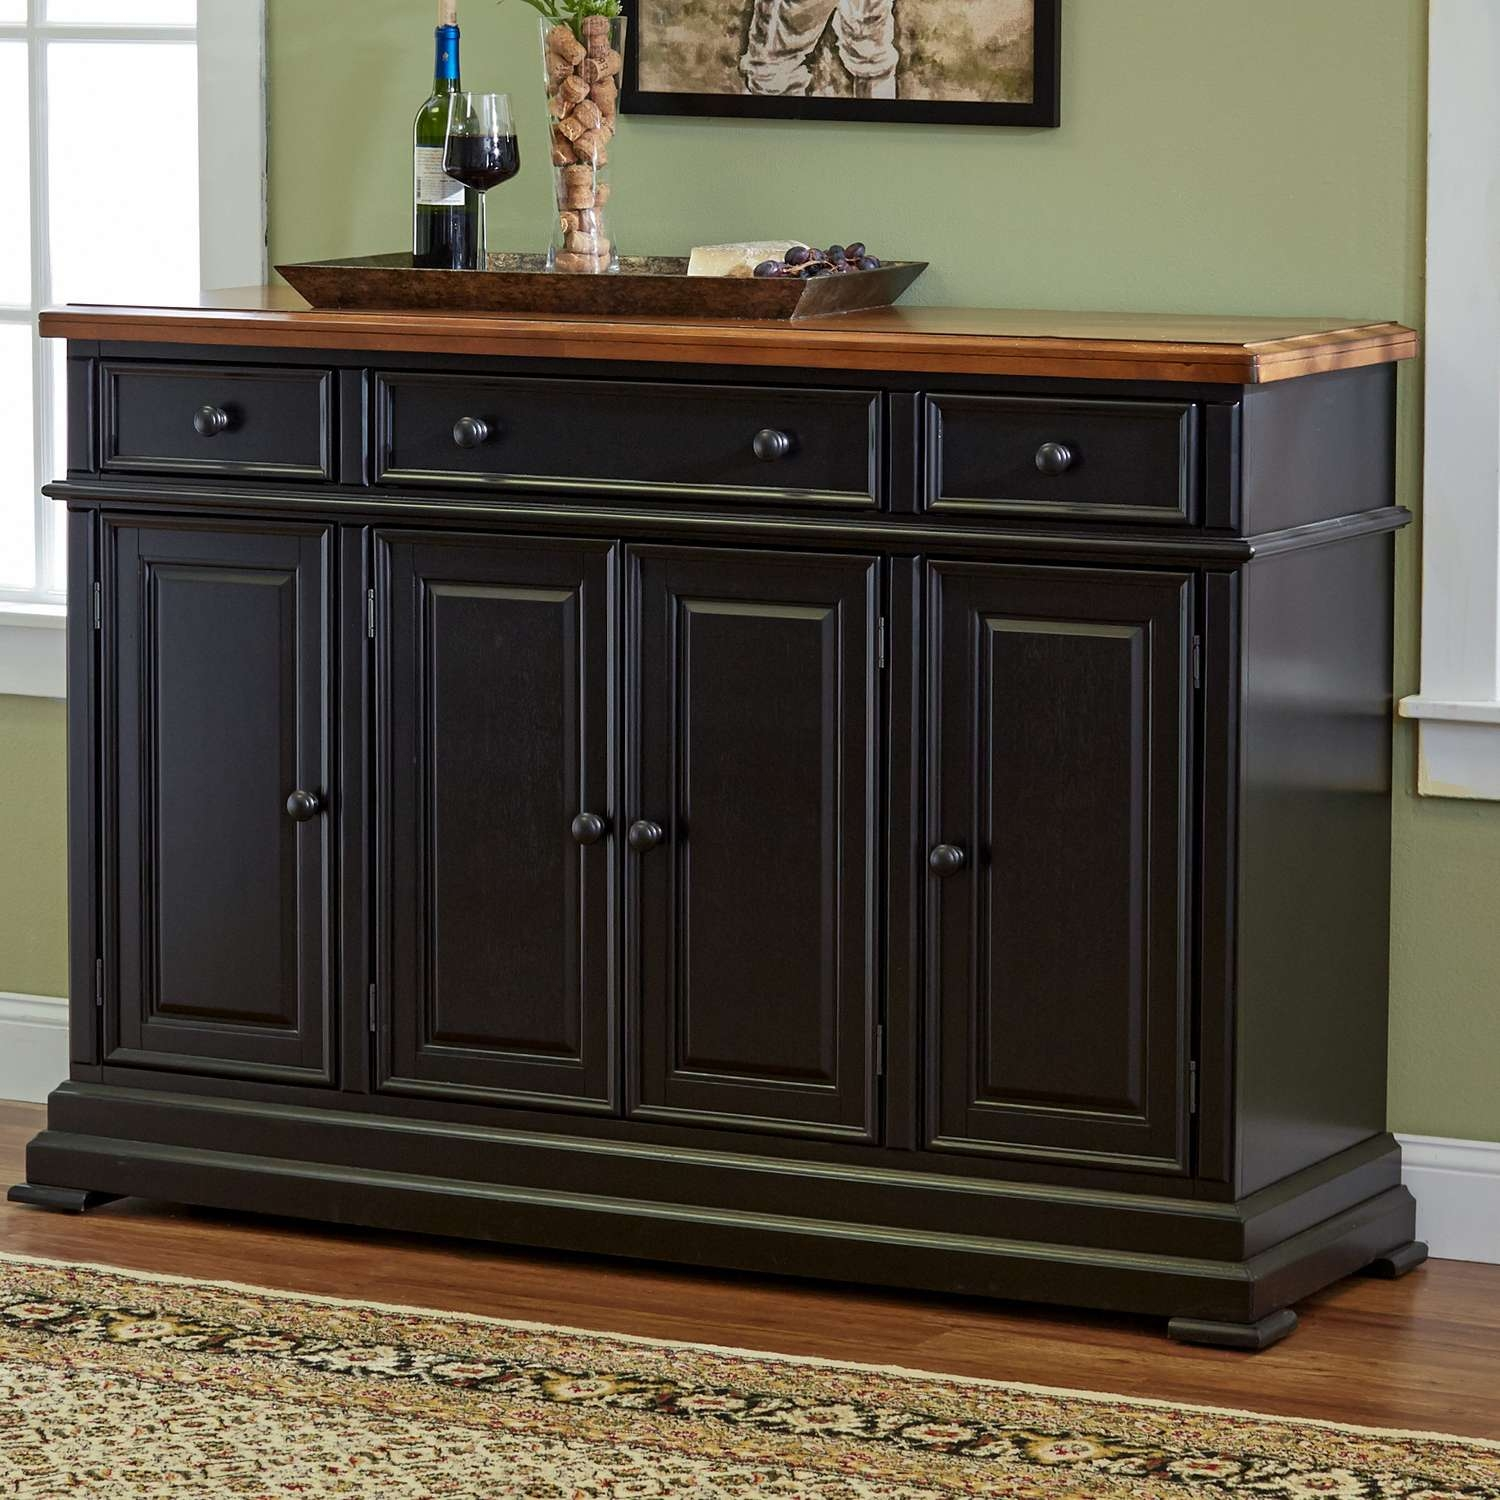 Furniture: Dark Wood Flooring And White Sideboard Buffet And Regarding Black Sideboards And Buffets (View 6 of 20)